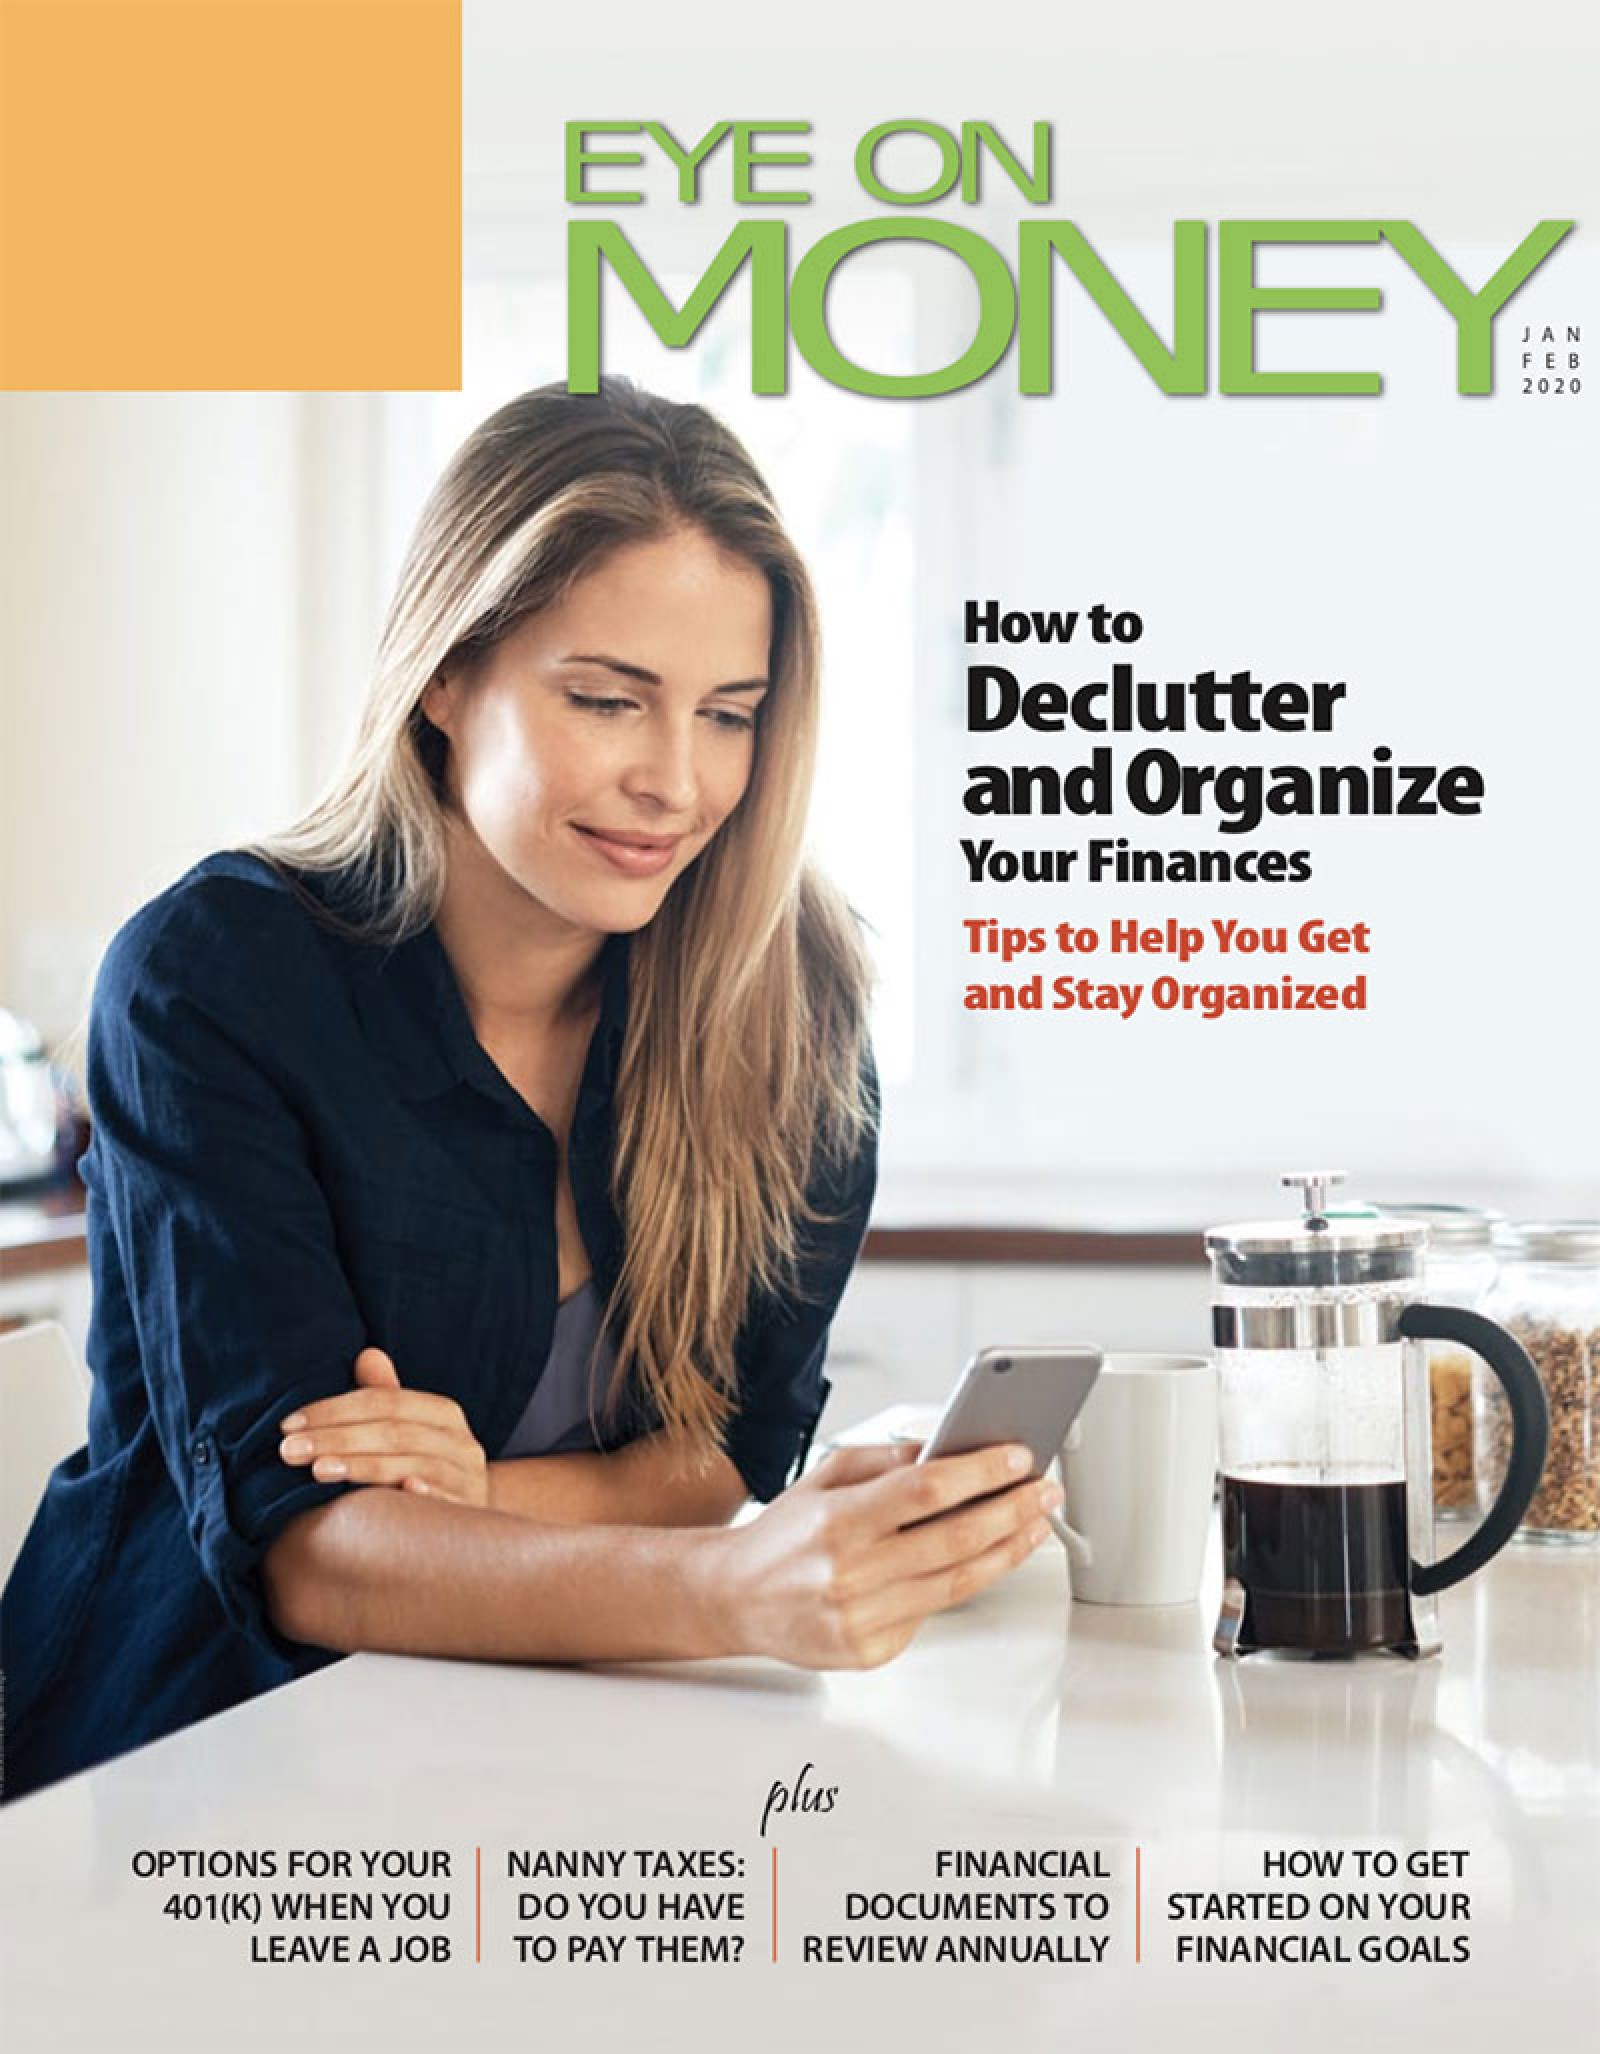 Eye on money magazine cover